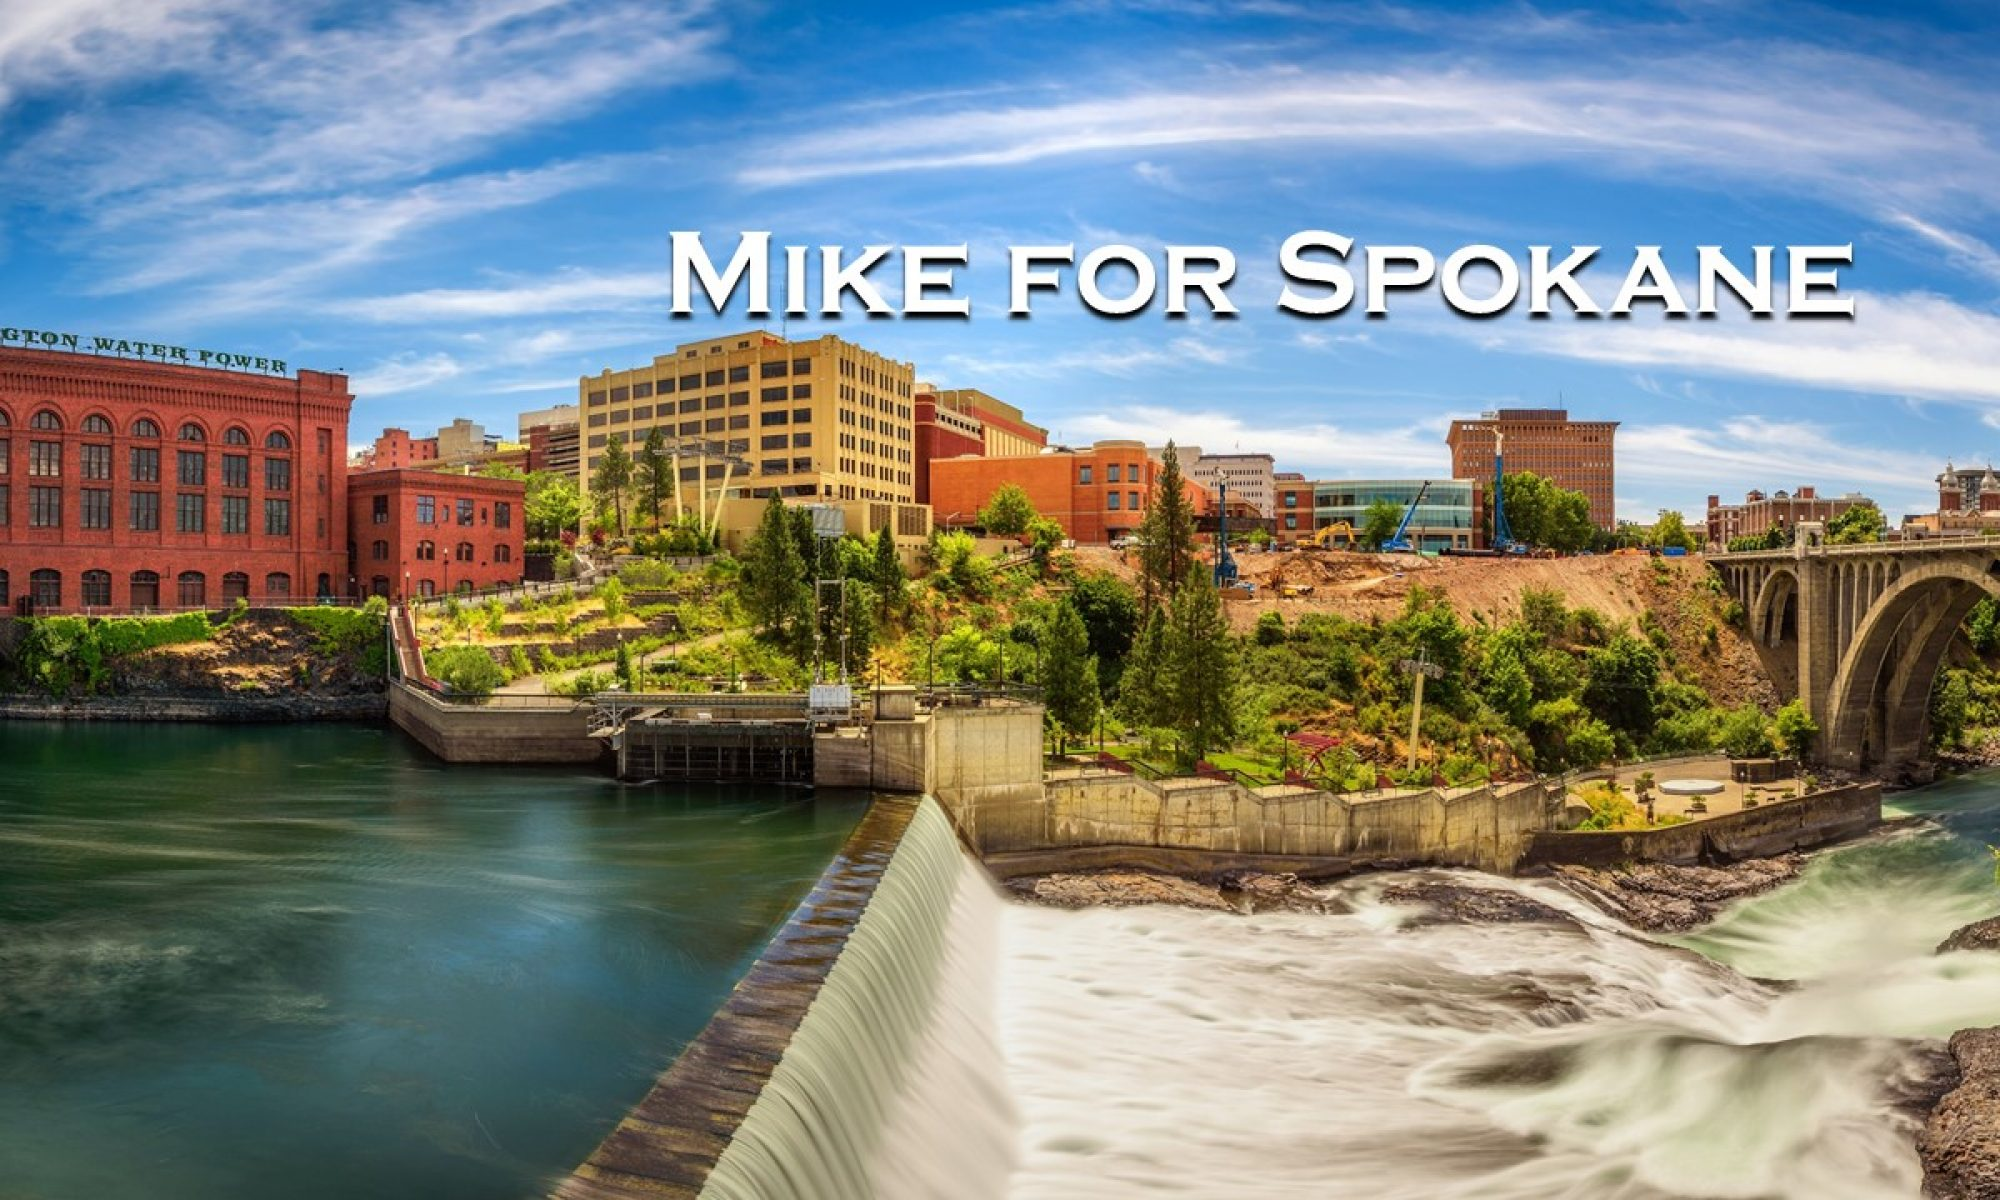 Mike for Spokane